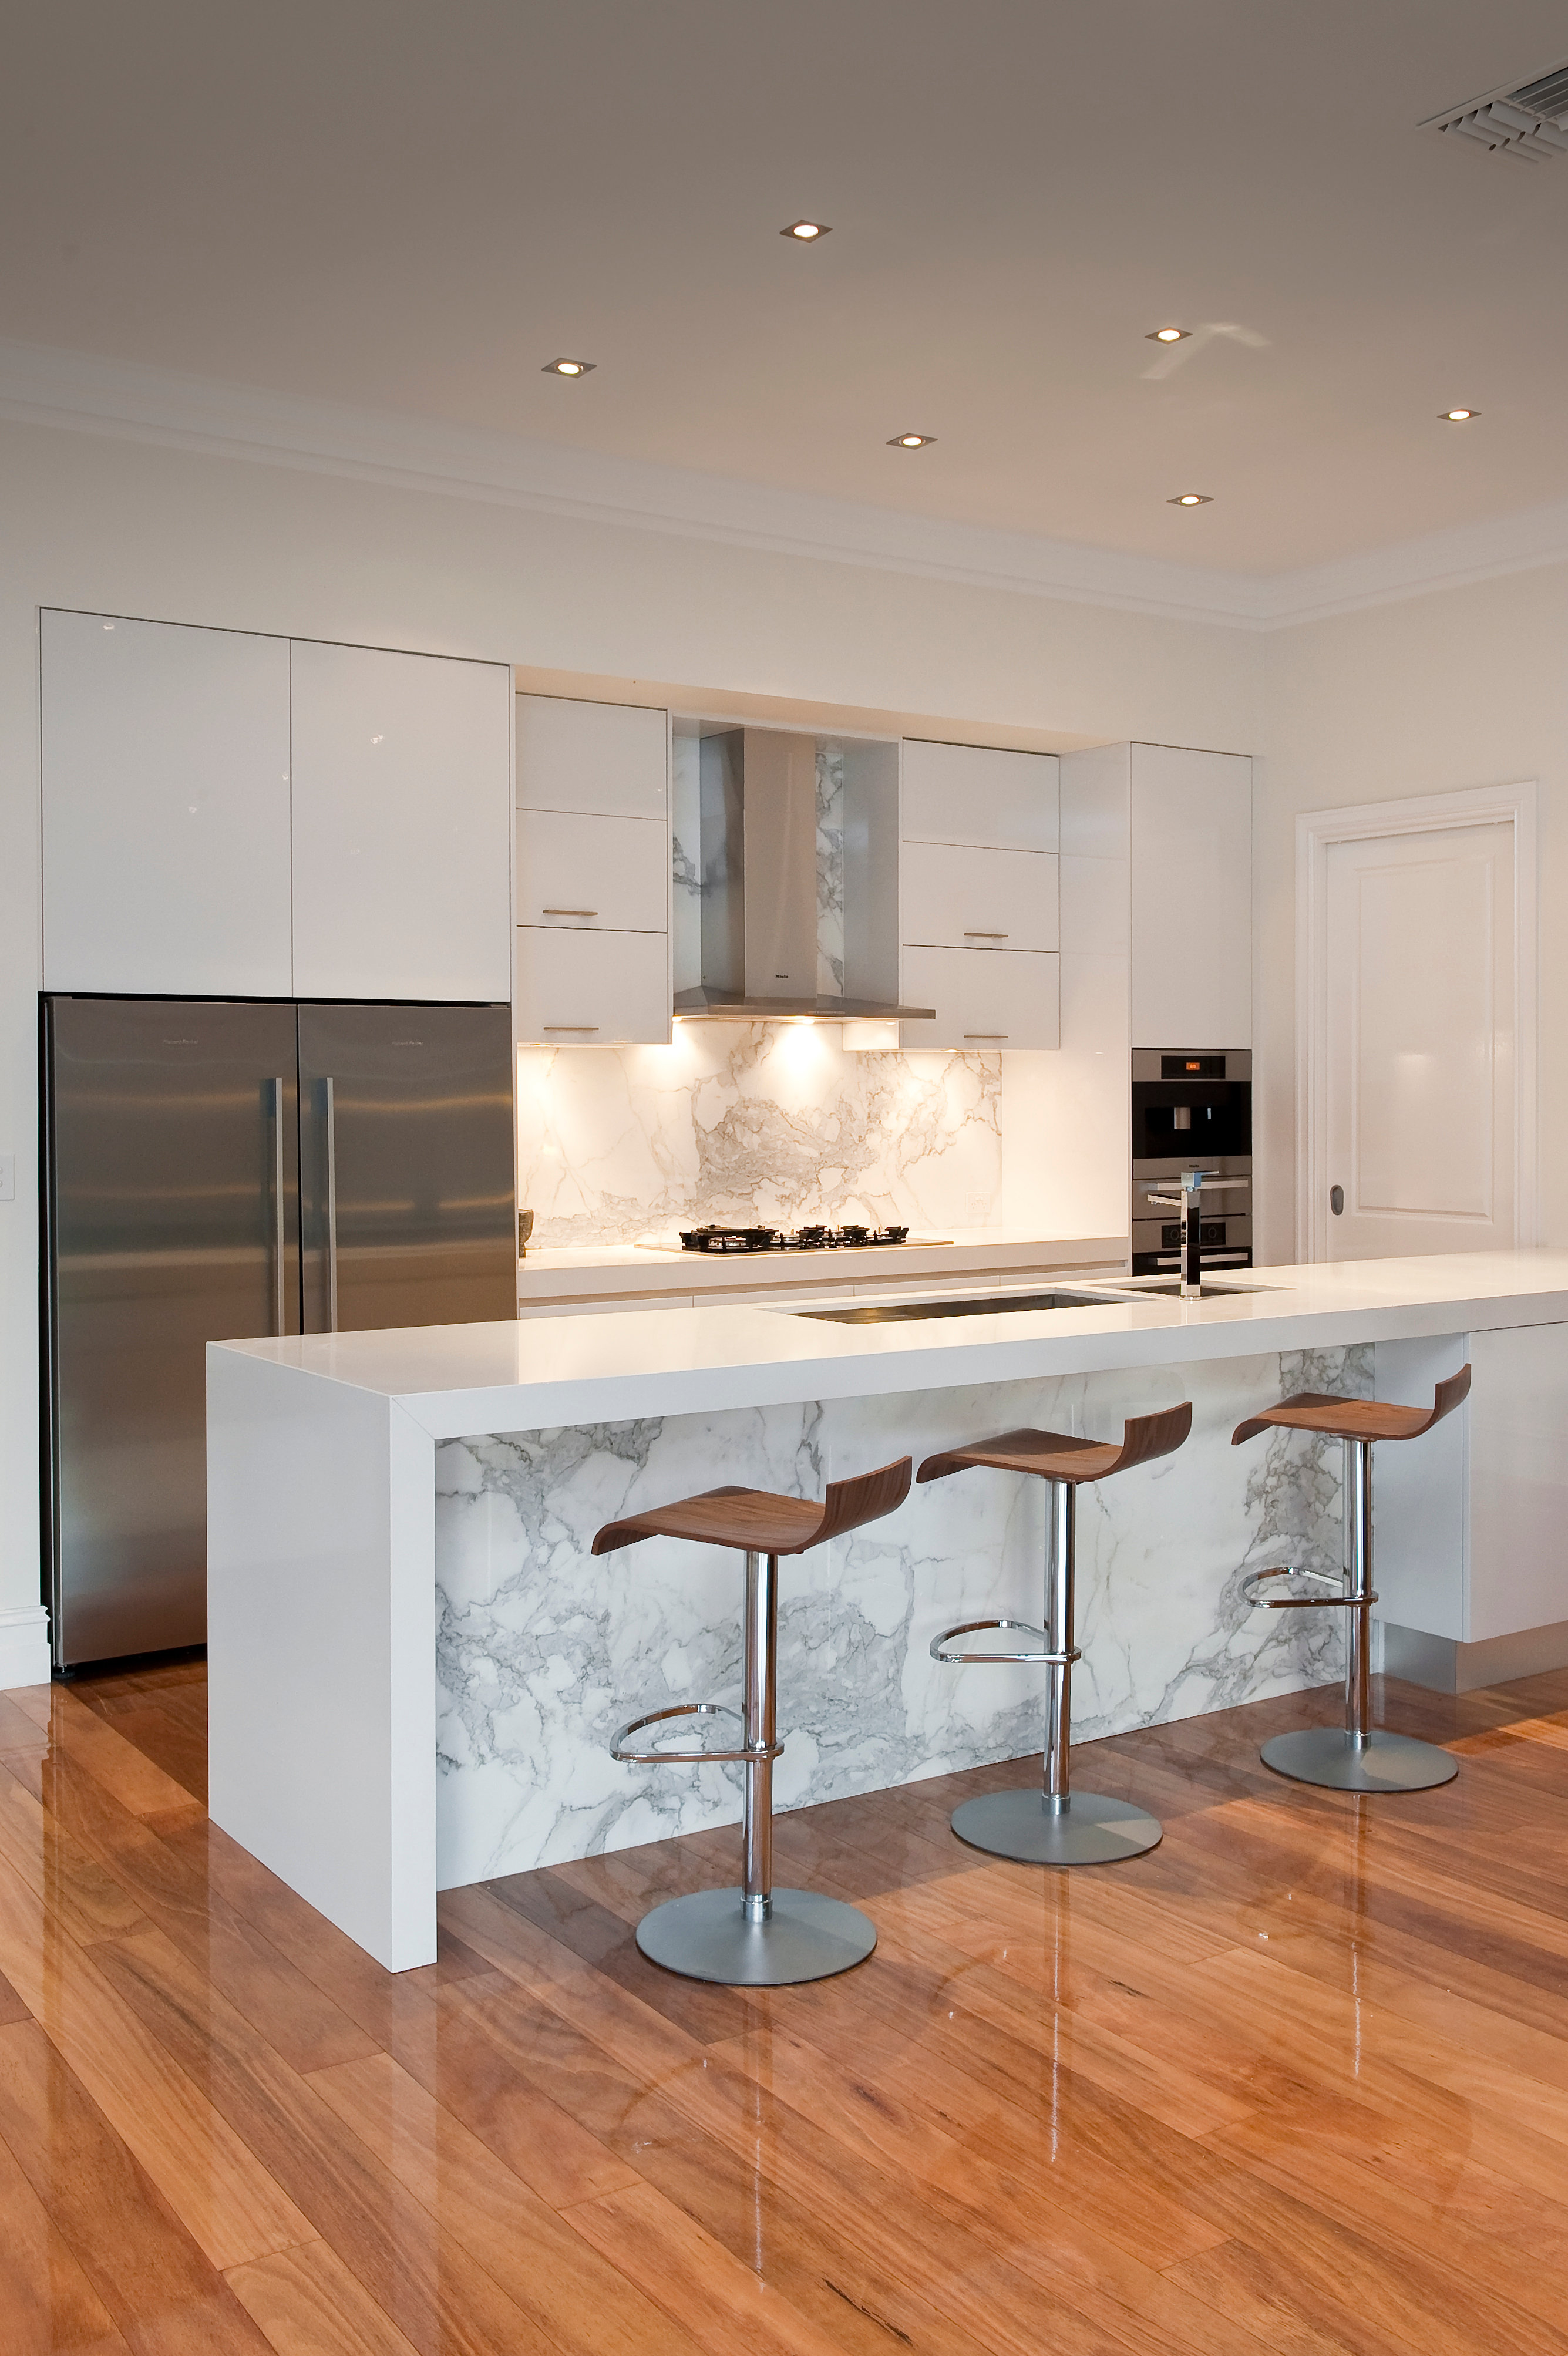 kitchen design adelaide tma kitchen design tony warren from adelaide south 1082